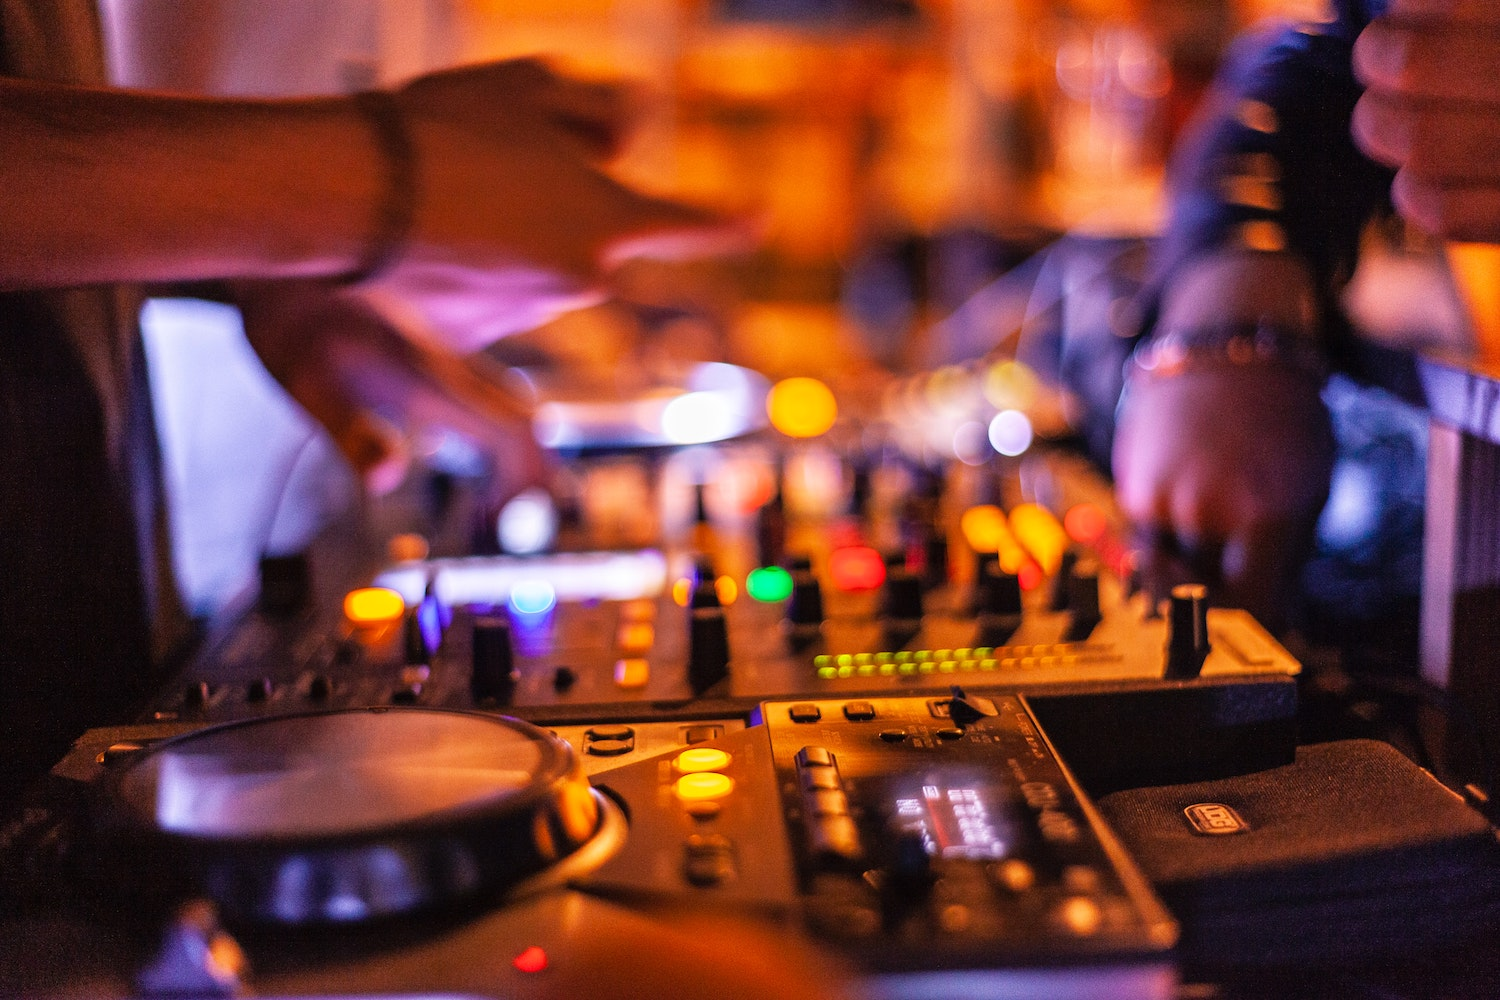 Custom Music - We make sure you approve our playlist before your big day, and tailor it to your favorite genres. This is your party after all, so you should be dancing to your music!